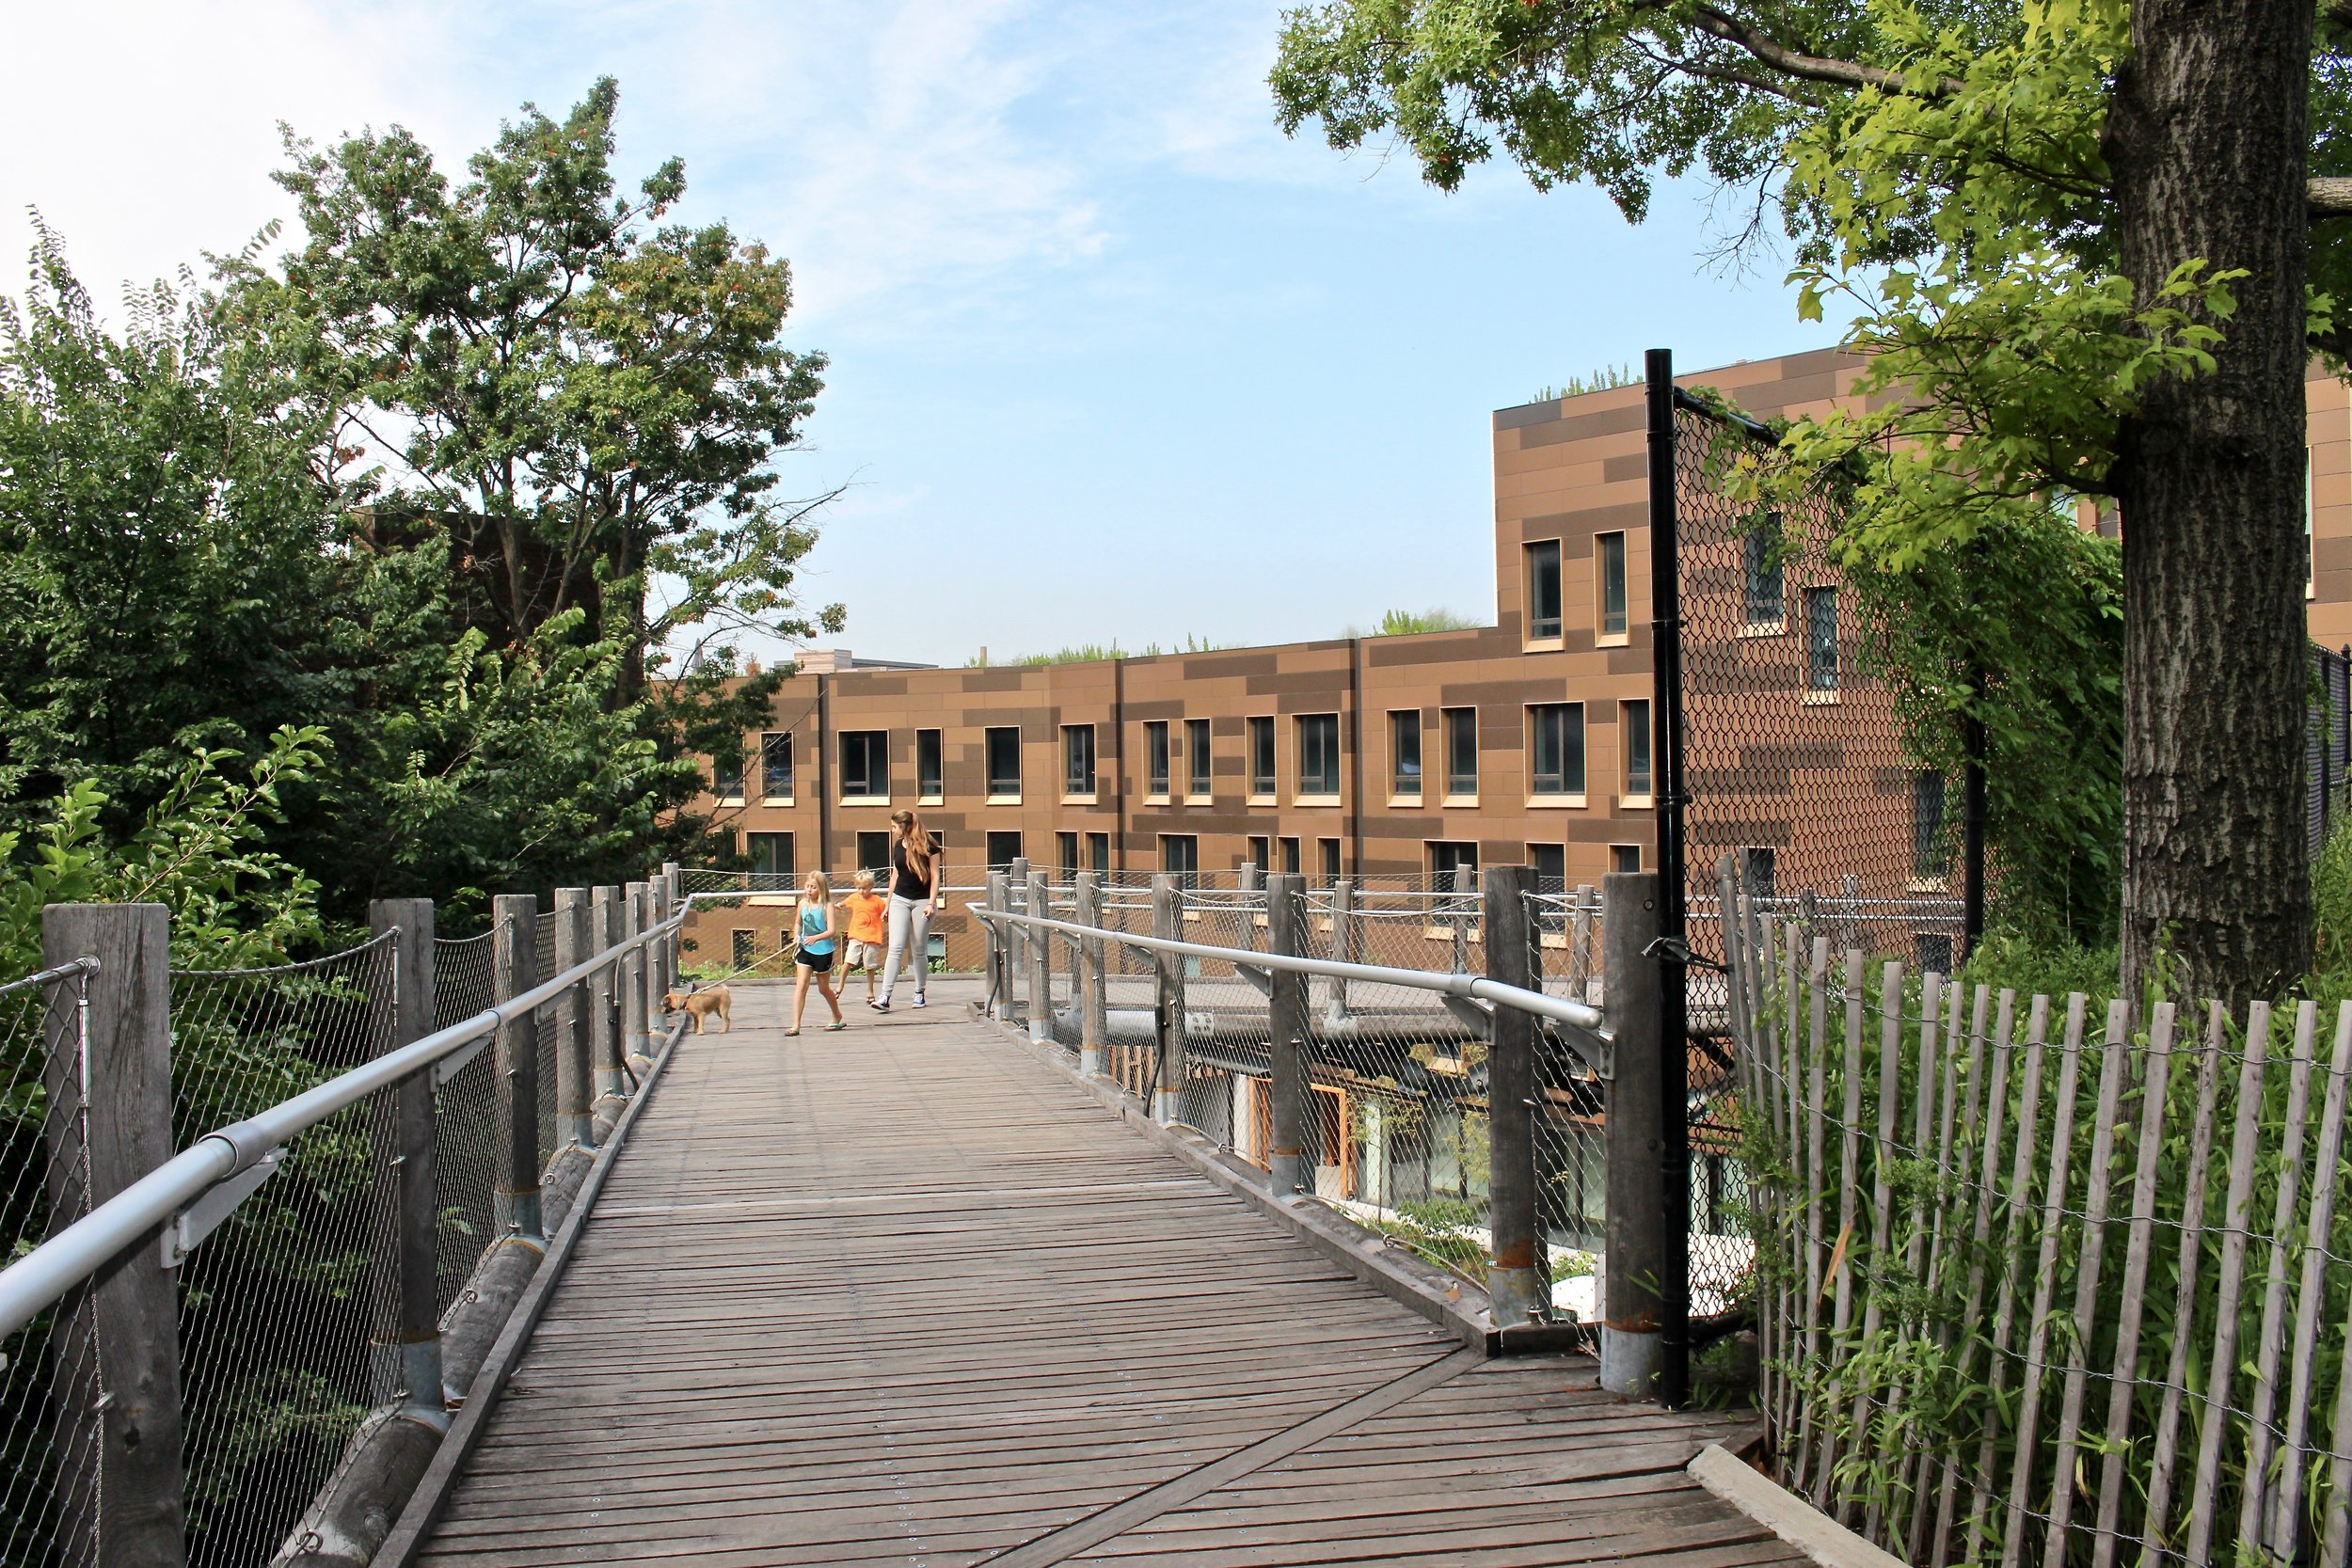 """Another """"leg"""" of the zig zag across and as you can see downhill. The Pier House is the building you can see, which is located on the other side of the BQE on the waterfront, overlooking Brooklyn Bridge Park."""